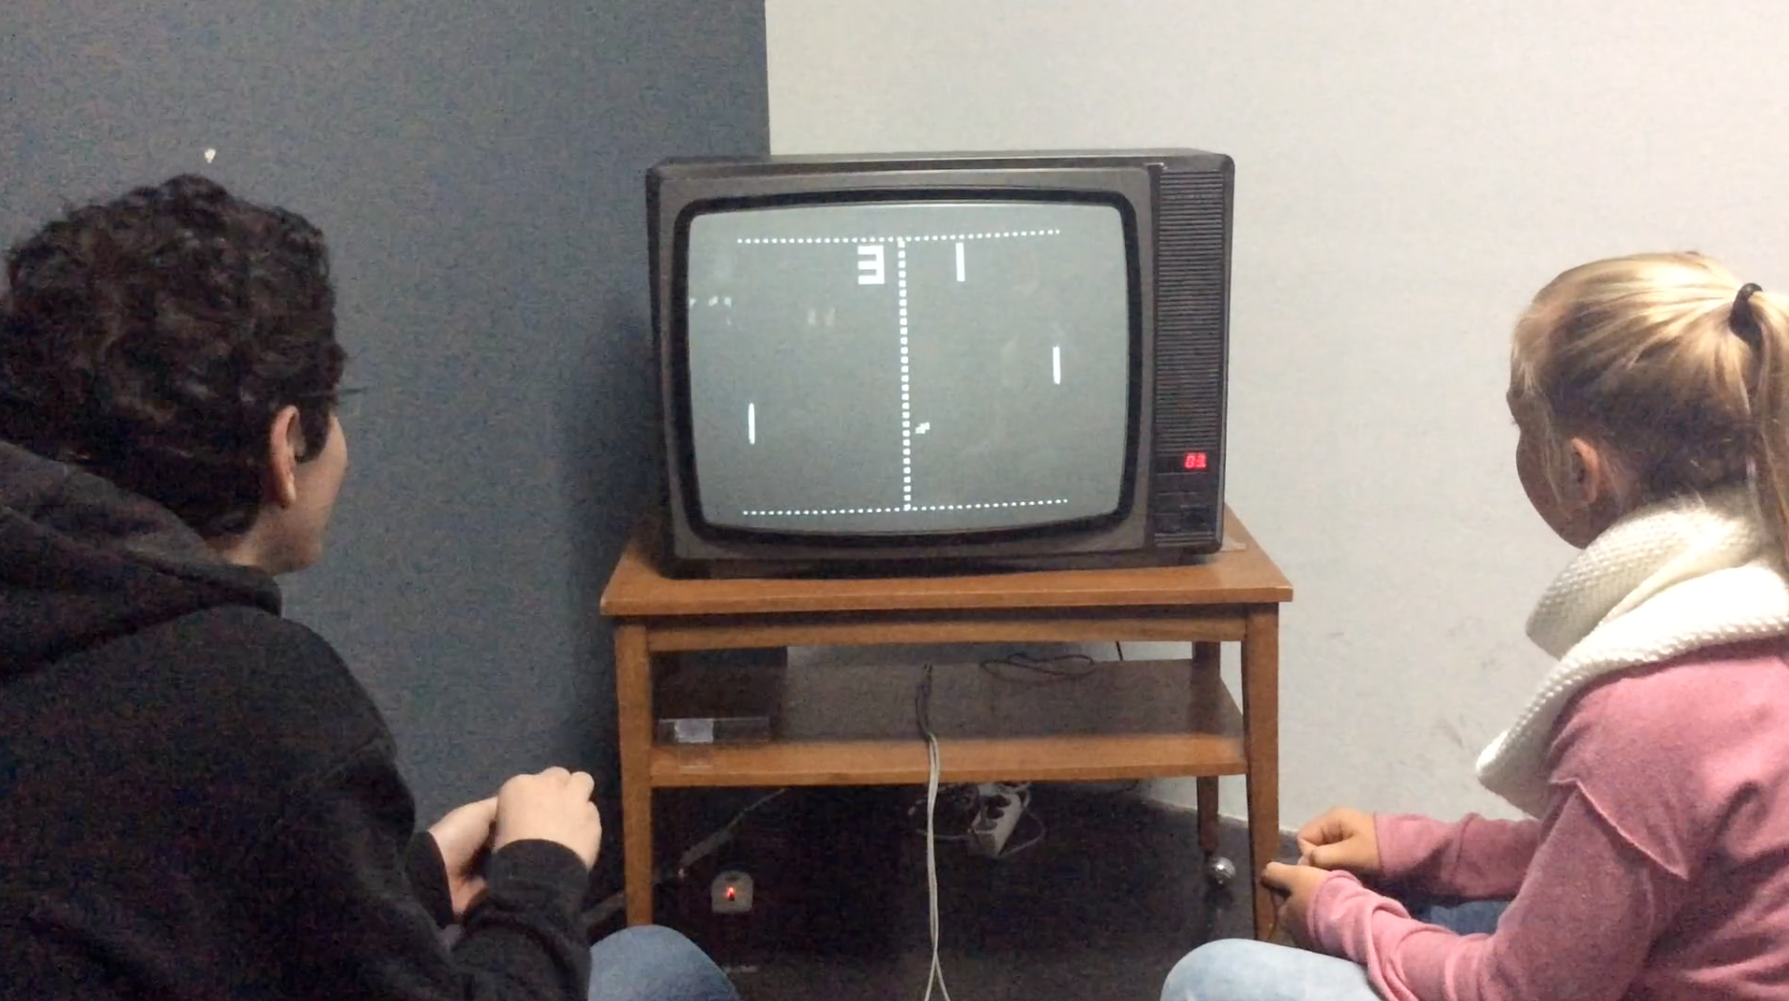 A boy and a girl sitting in front of an old tube TV and play Ping Pong